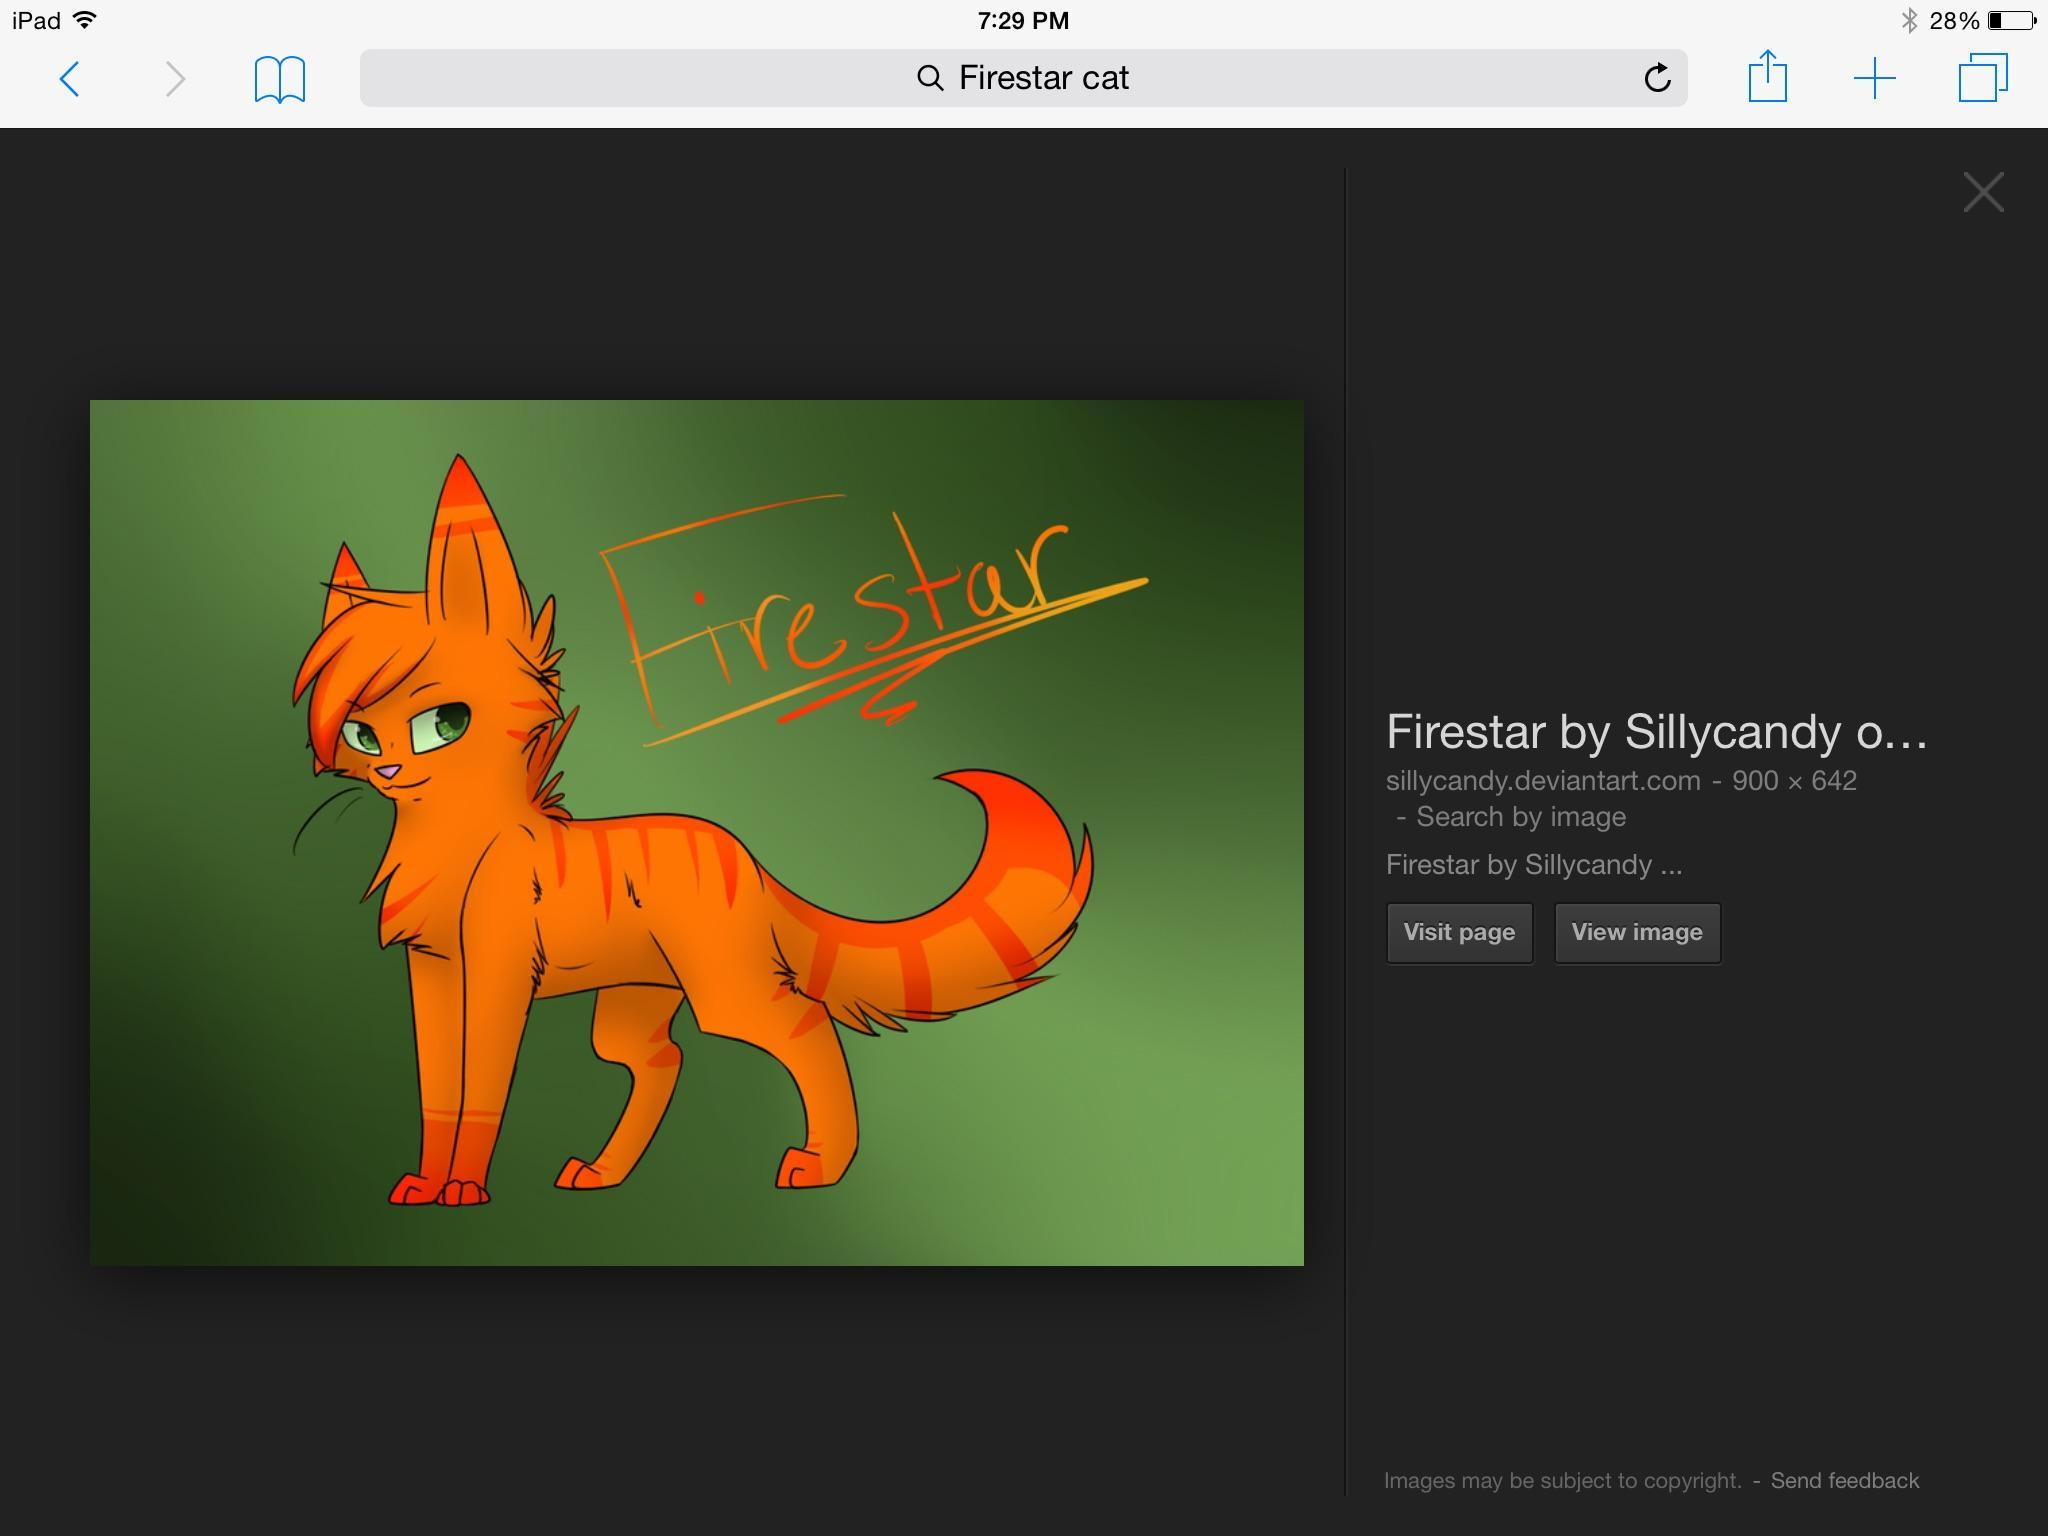 What is Firestar's kitty pet name?